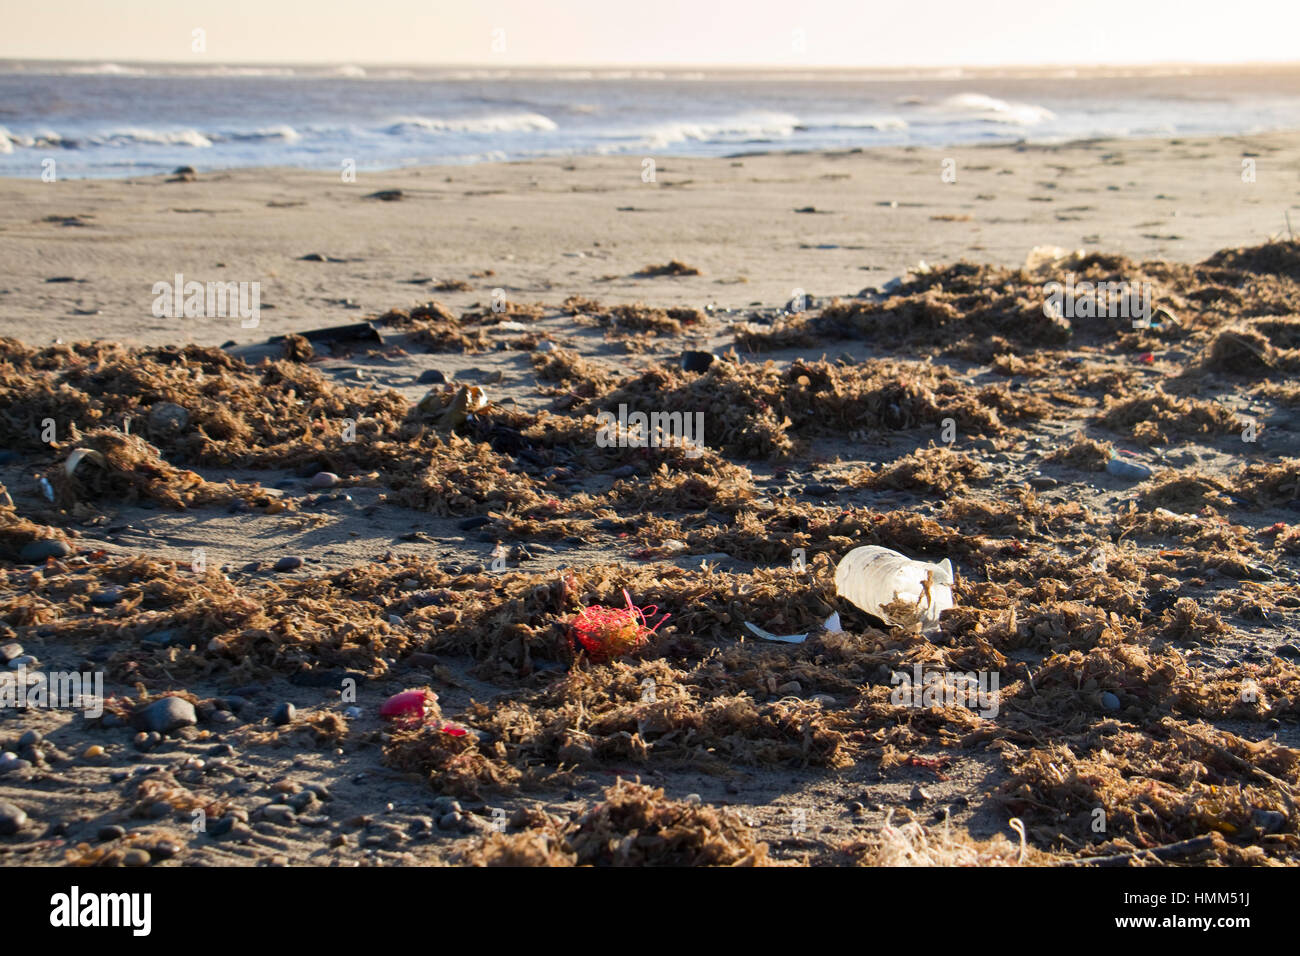 Plastics and litter on beach at Spurn Point, East Yorkshire, UK - Stock Image